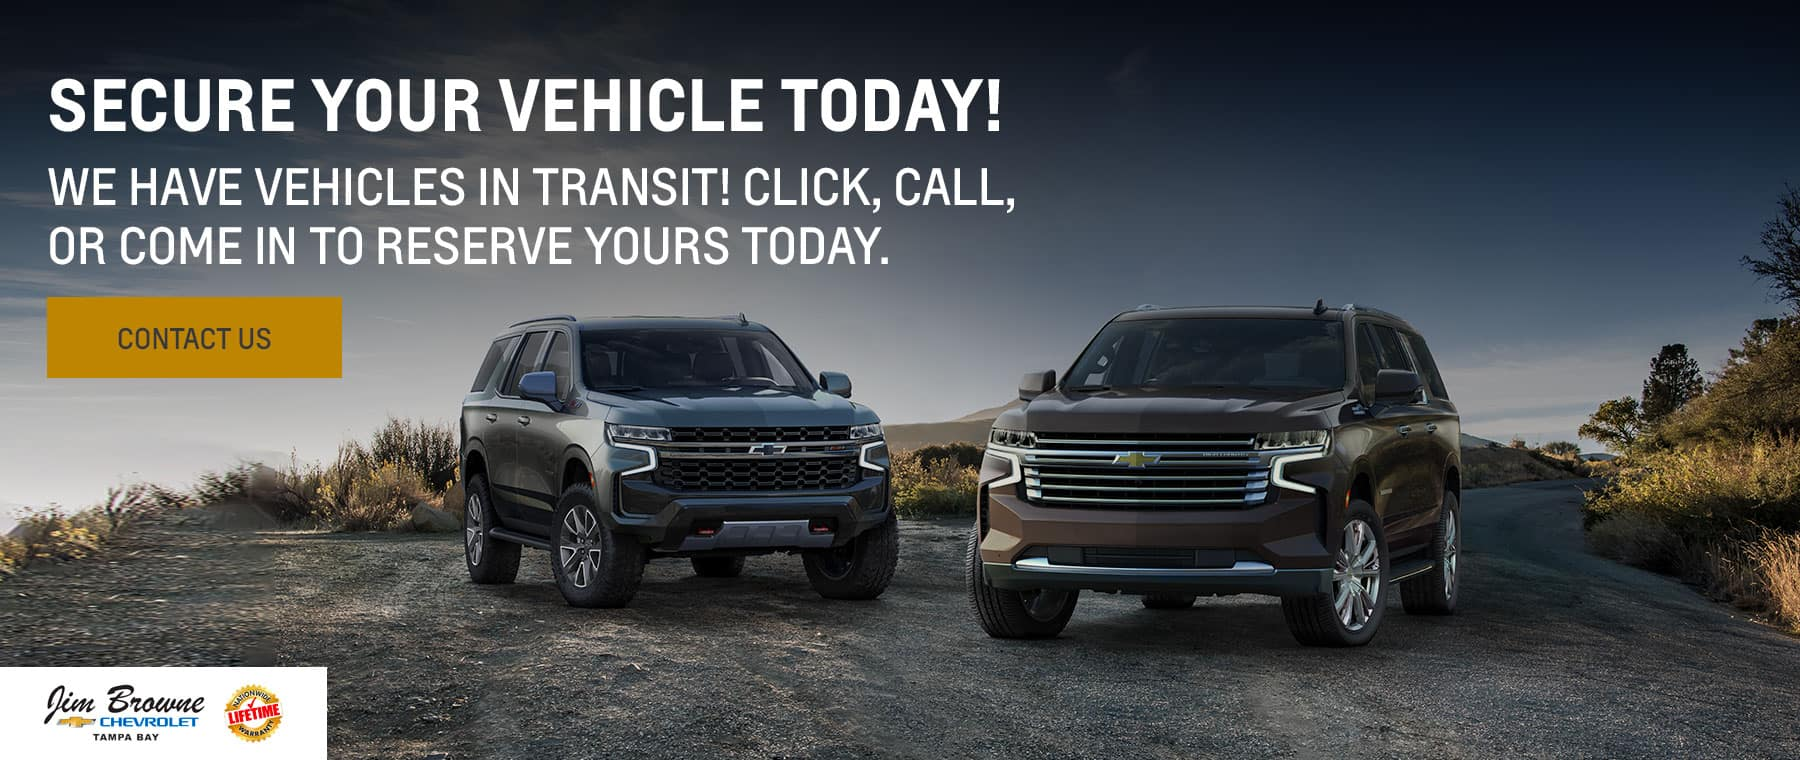 Secure your vehicle today! We have vehicles in transit! Click, call, or come in to reserve yours today.